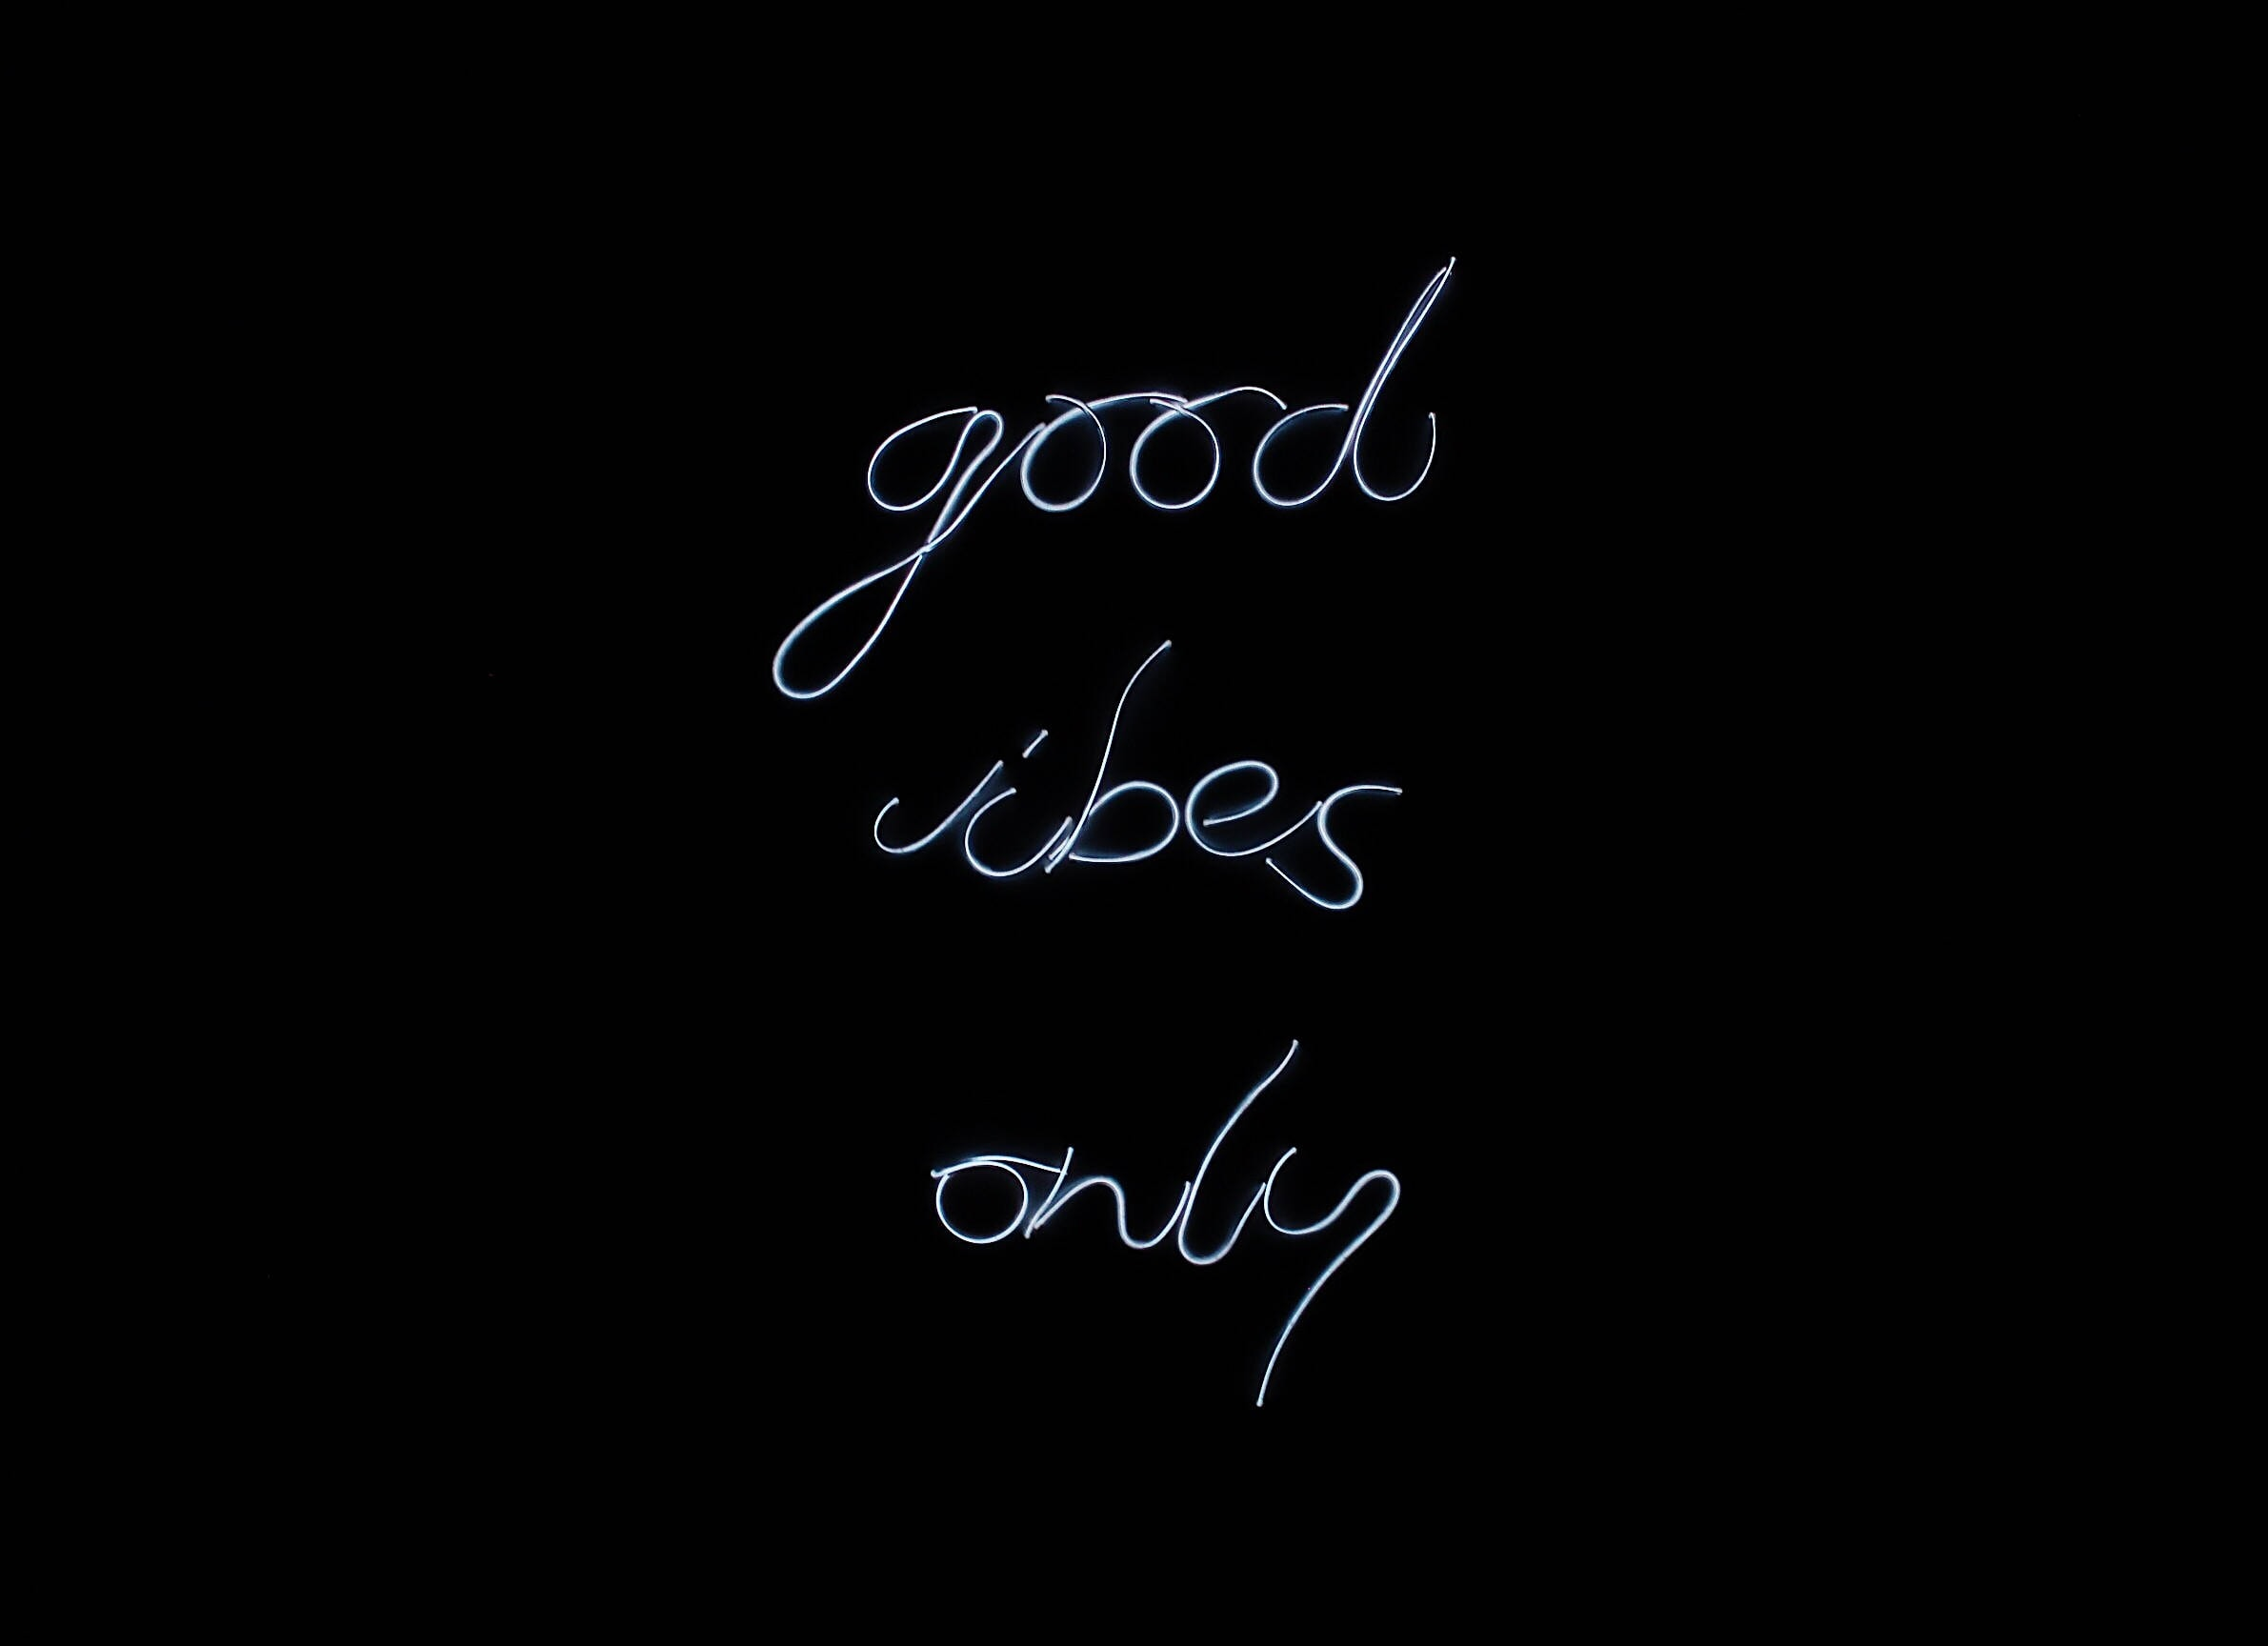 Neon Style LED Sign \'Good Vibes Only\' Home Decor